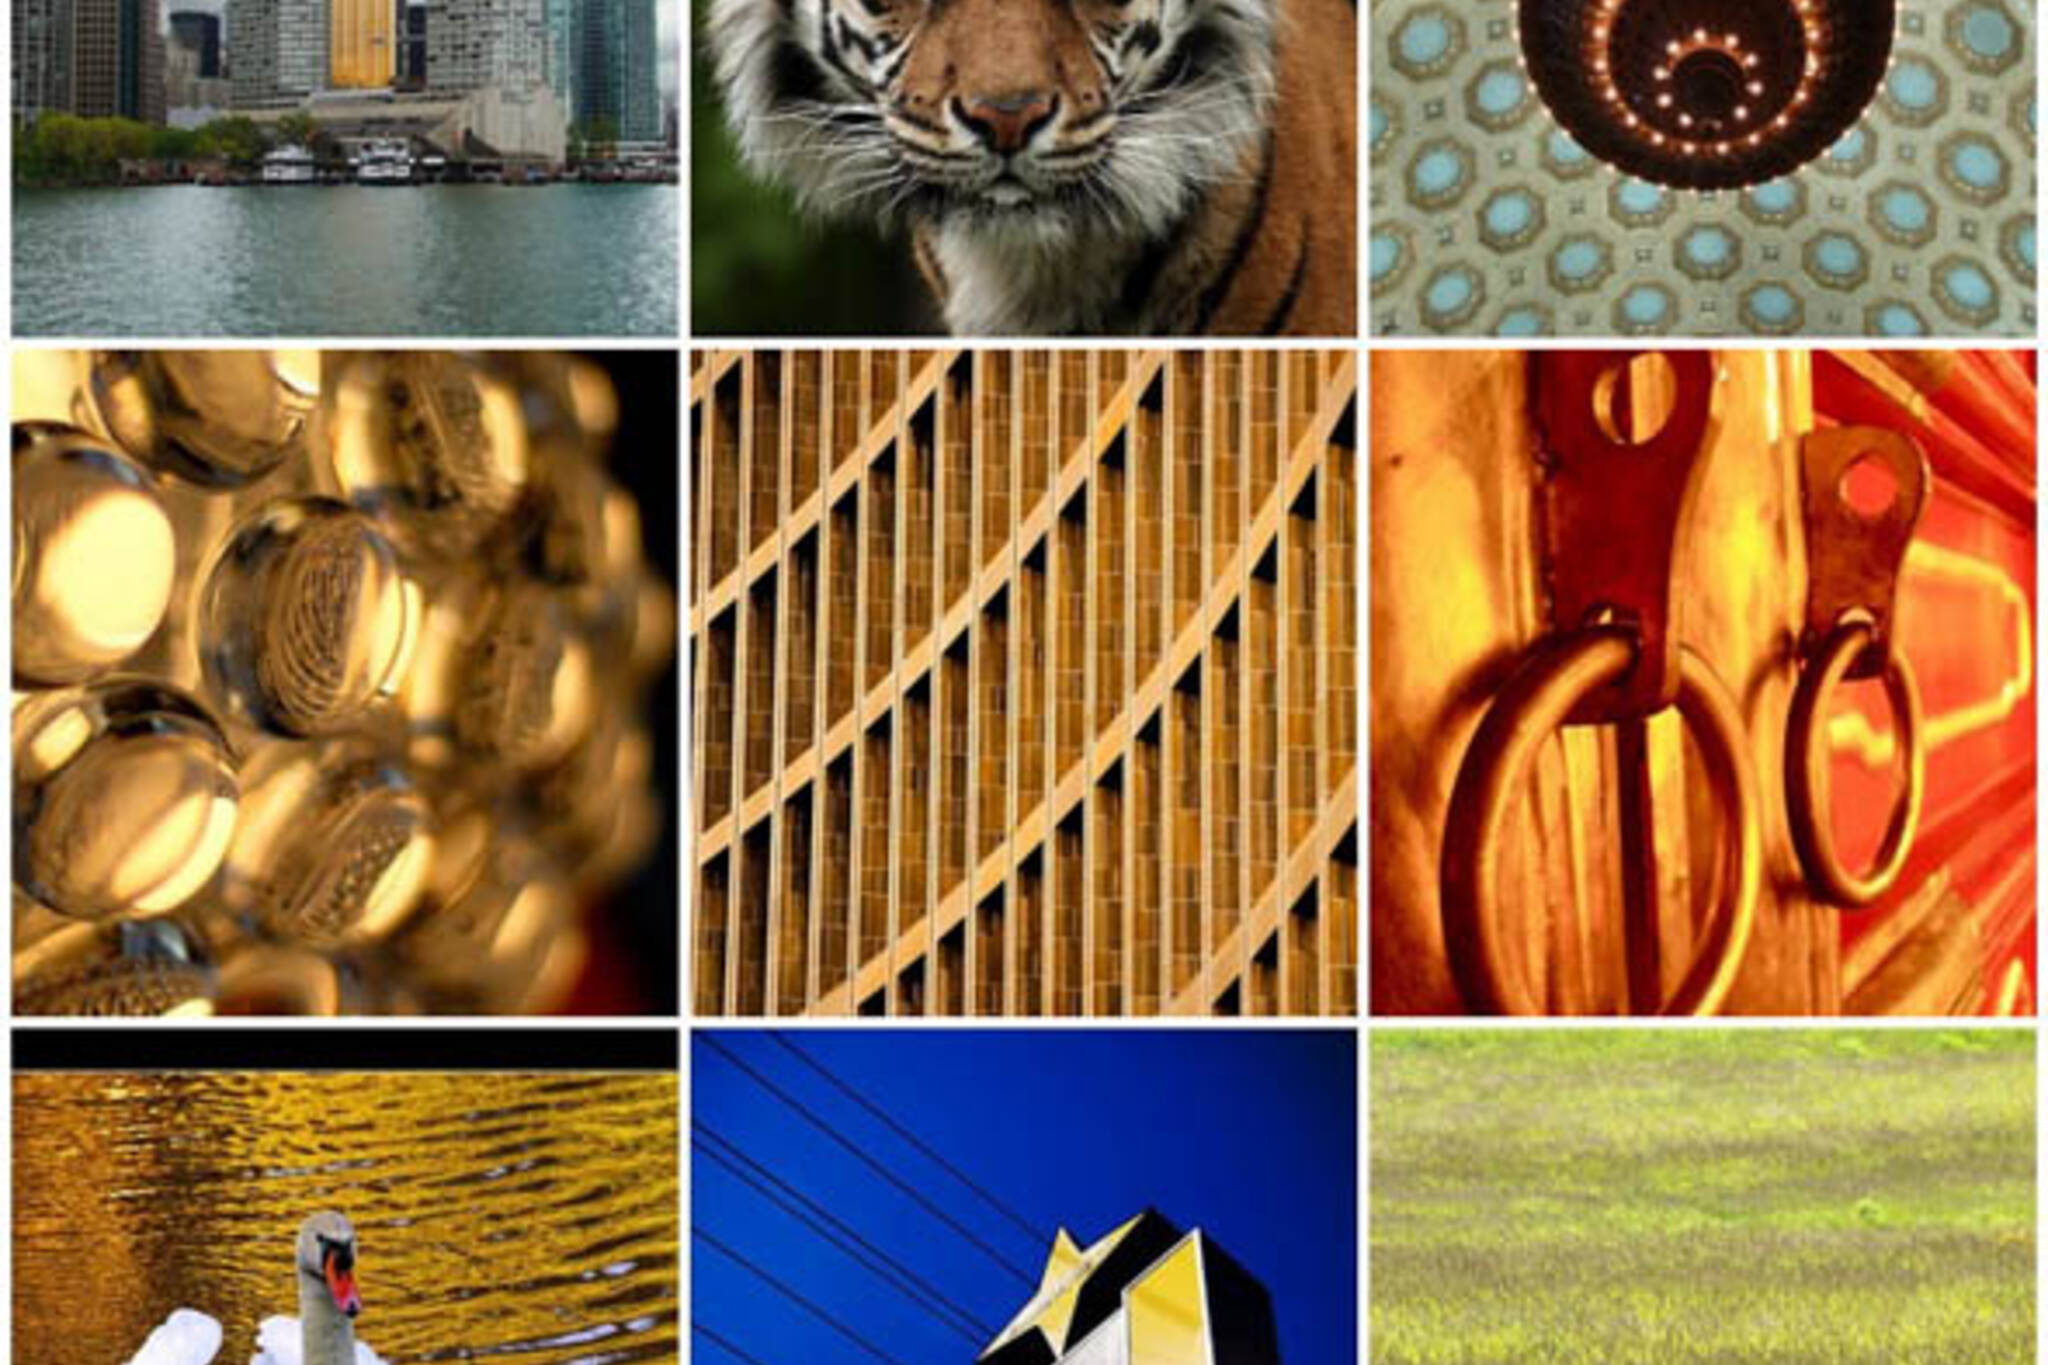 Flickr Forum: May 30th, 2008 - Gold